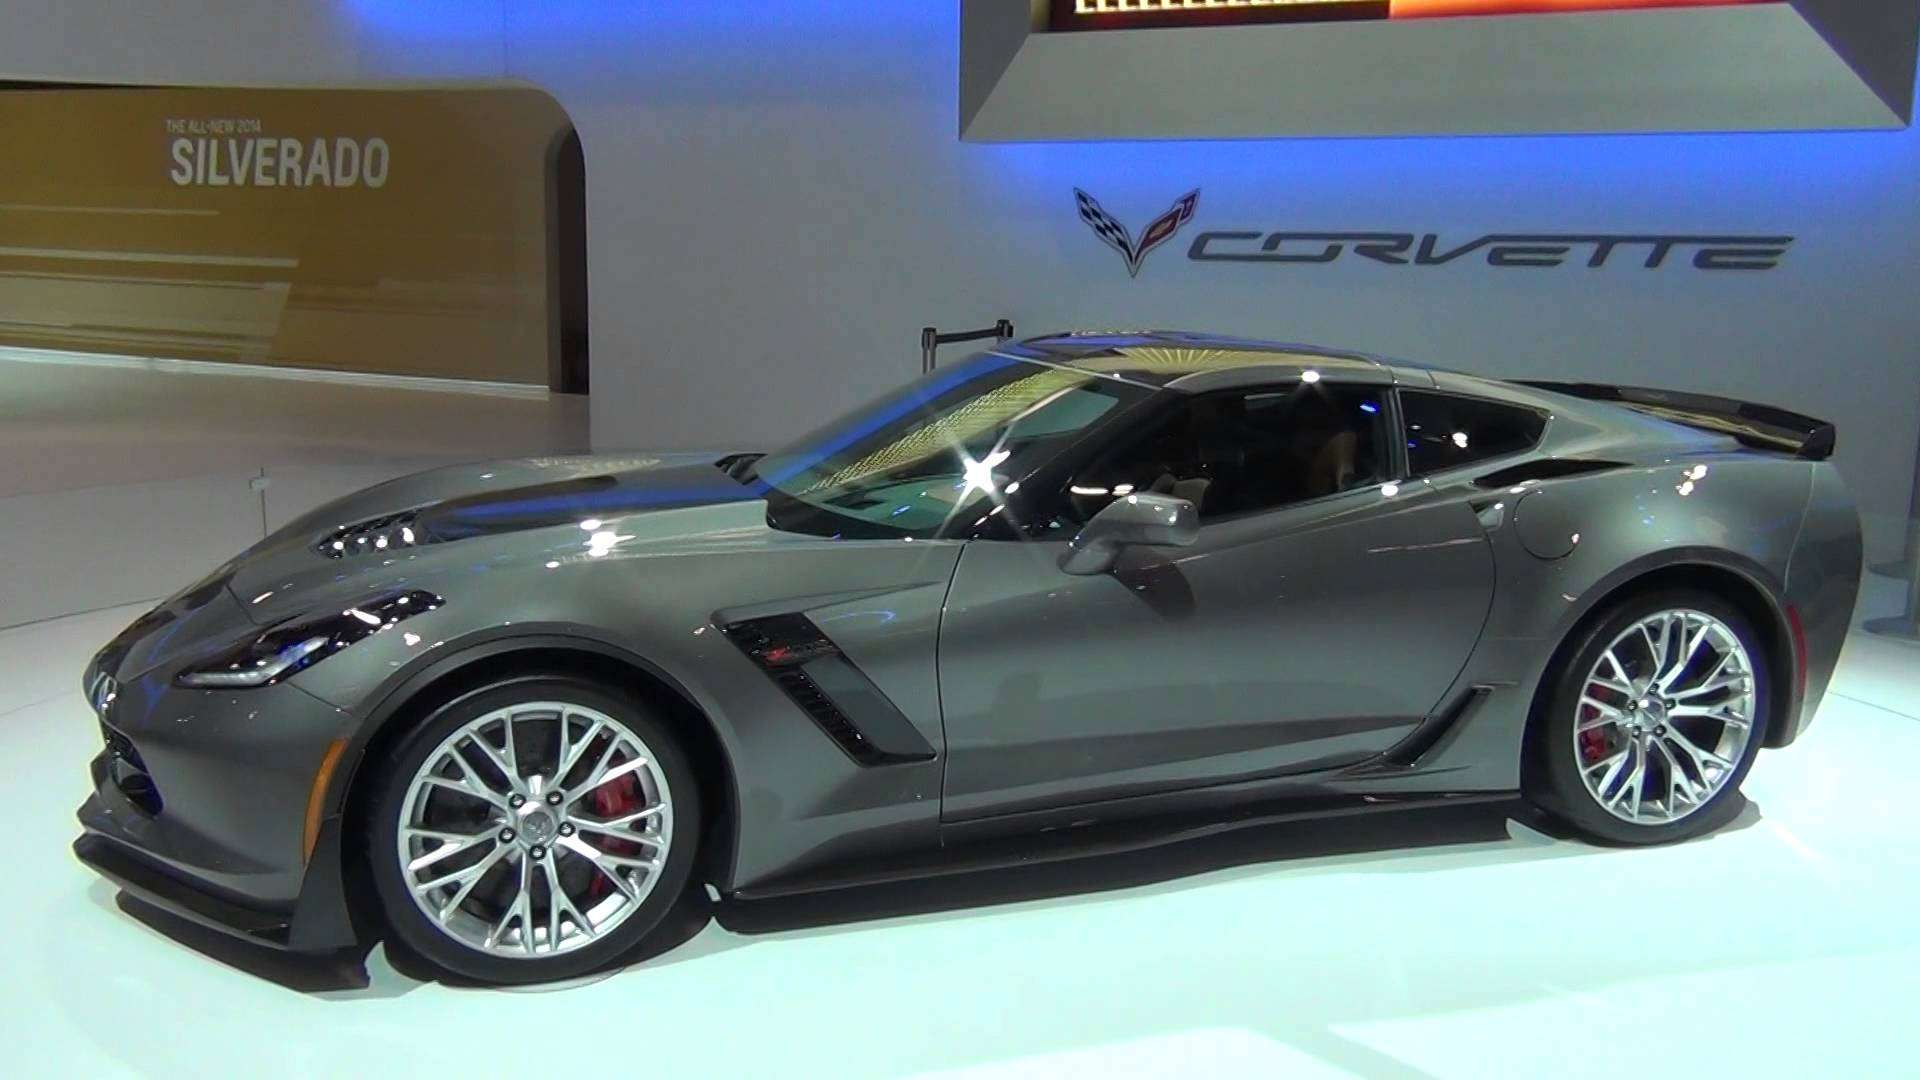 Corvette HD Wallpapers 1080p - WallpaperSafari